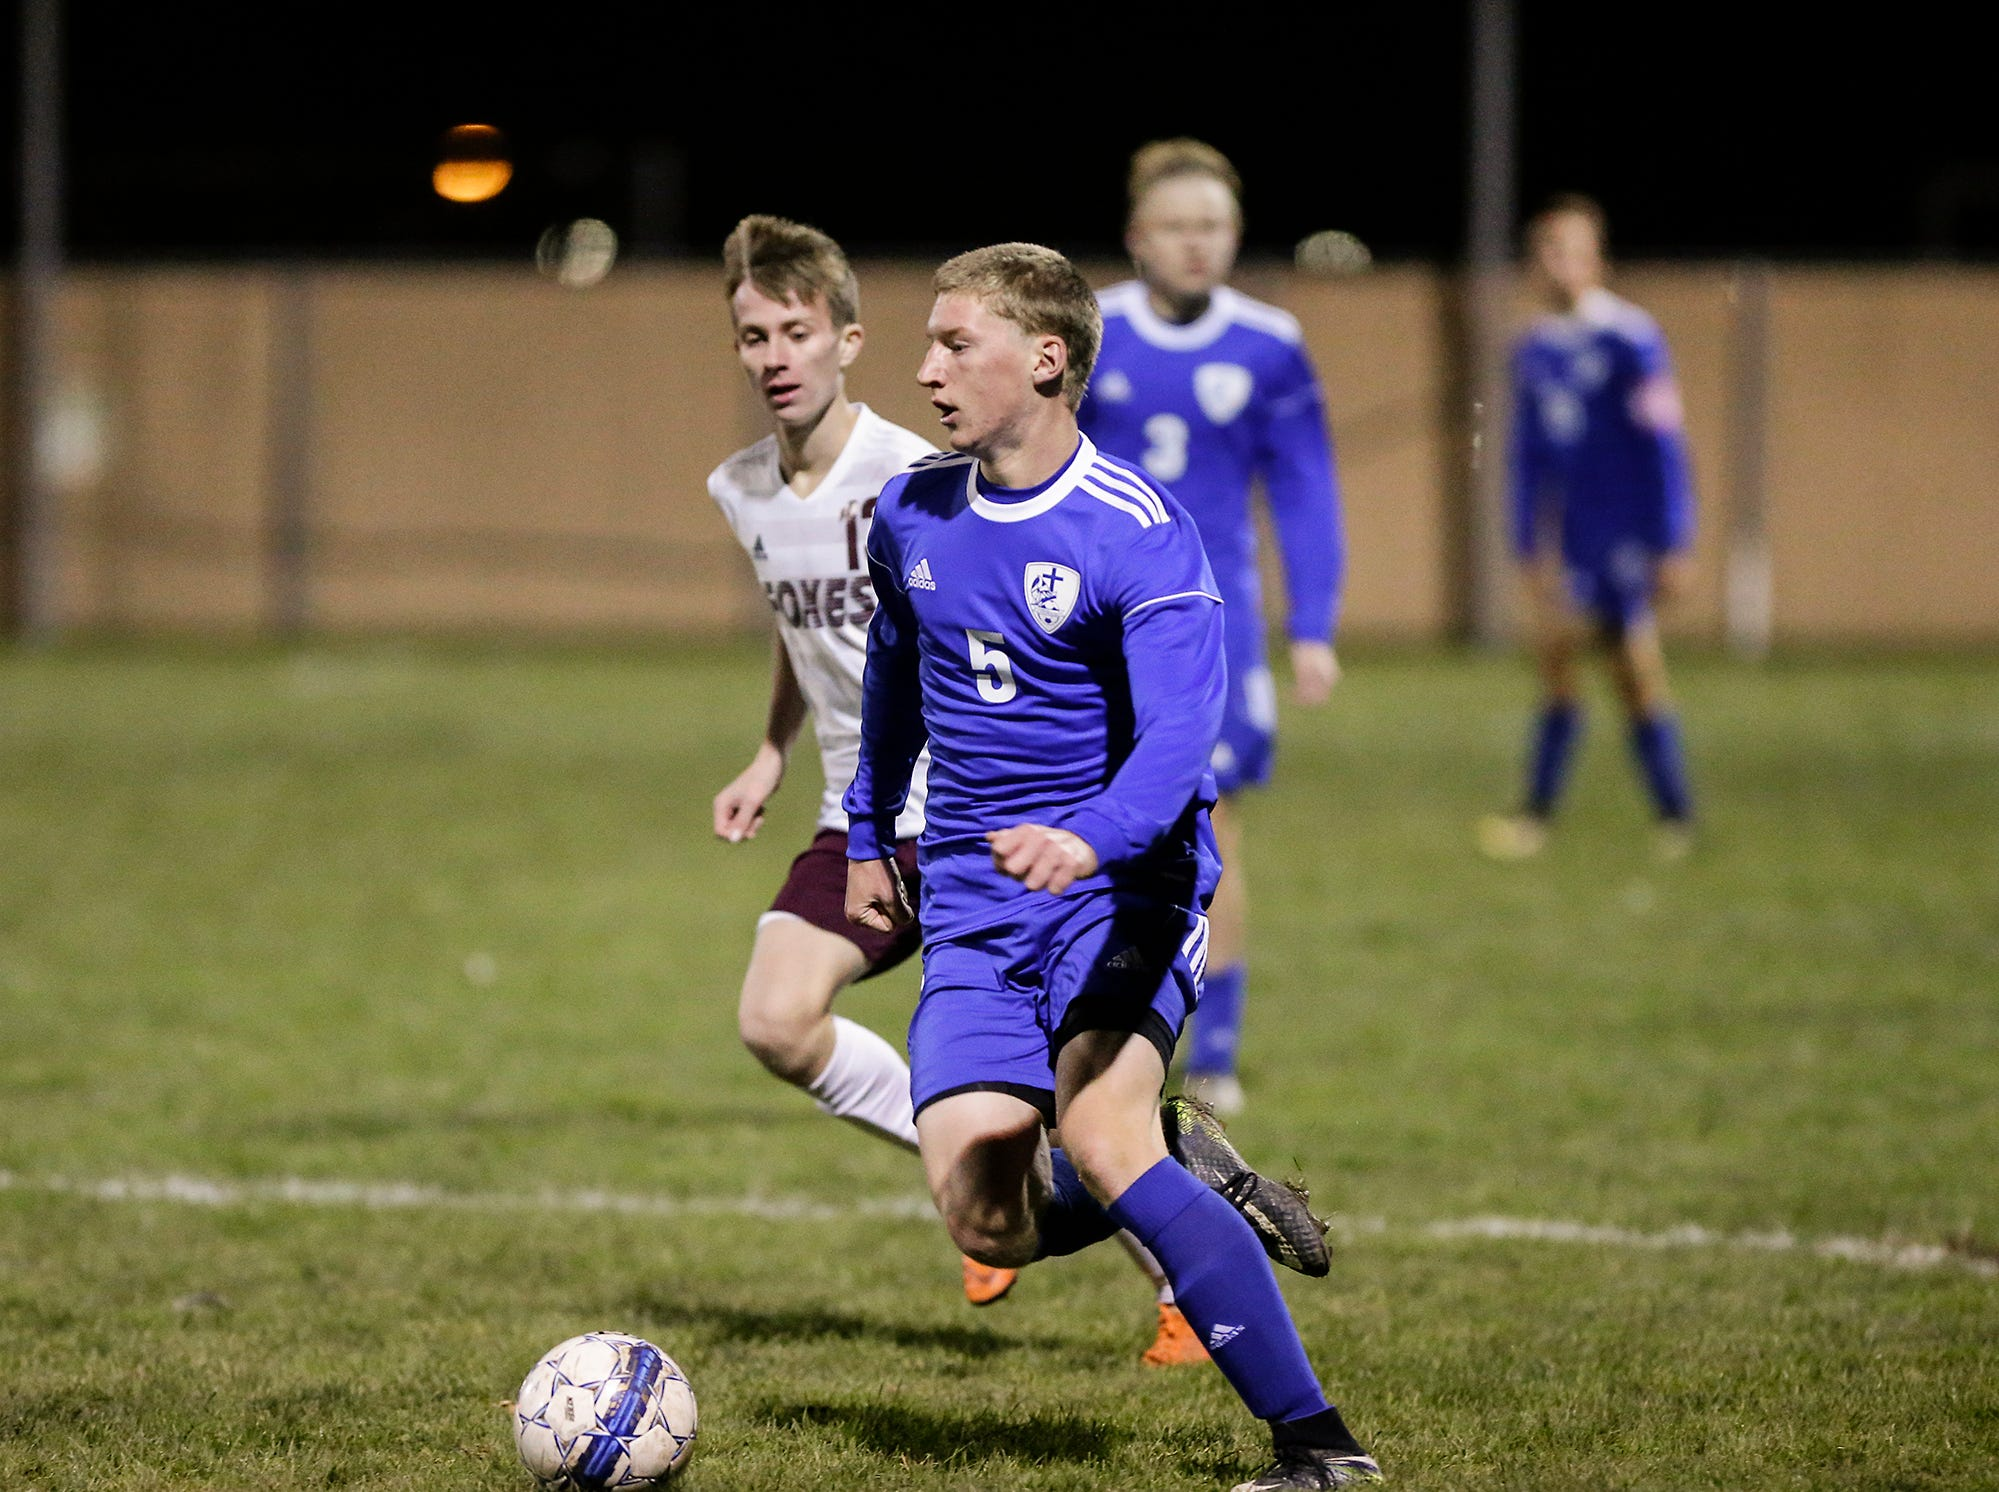 Winnebago Lutheran Academy soccer's Nathan Pausma works his way down the field against Omro High School during their WIAA regional playoff game Thursday, October 18, 2018 in Fond du Lac, Wisconsin. Doug Raflik/USA TODAY NETWORK-Wisconsin